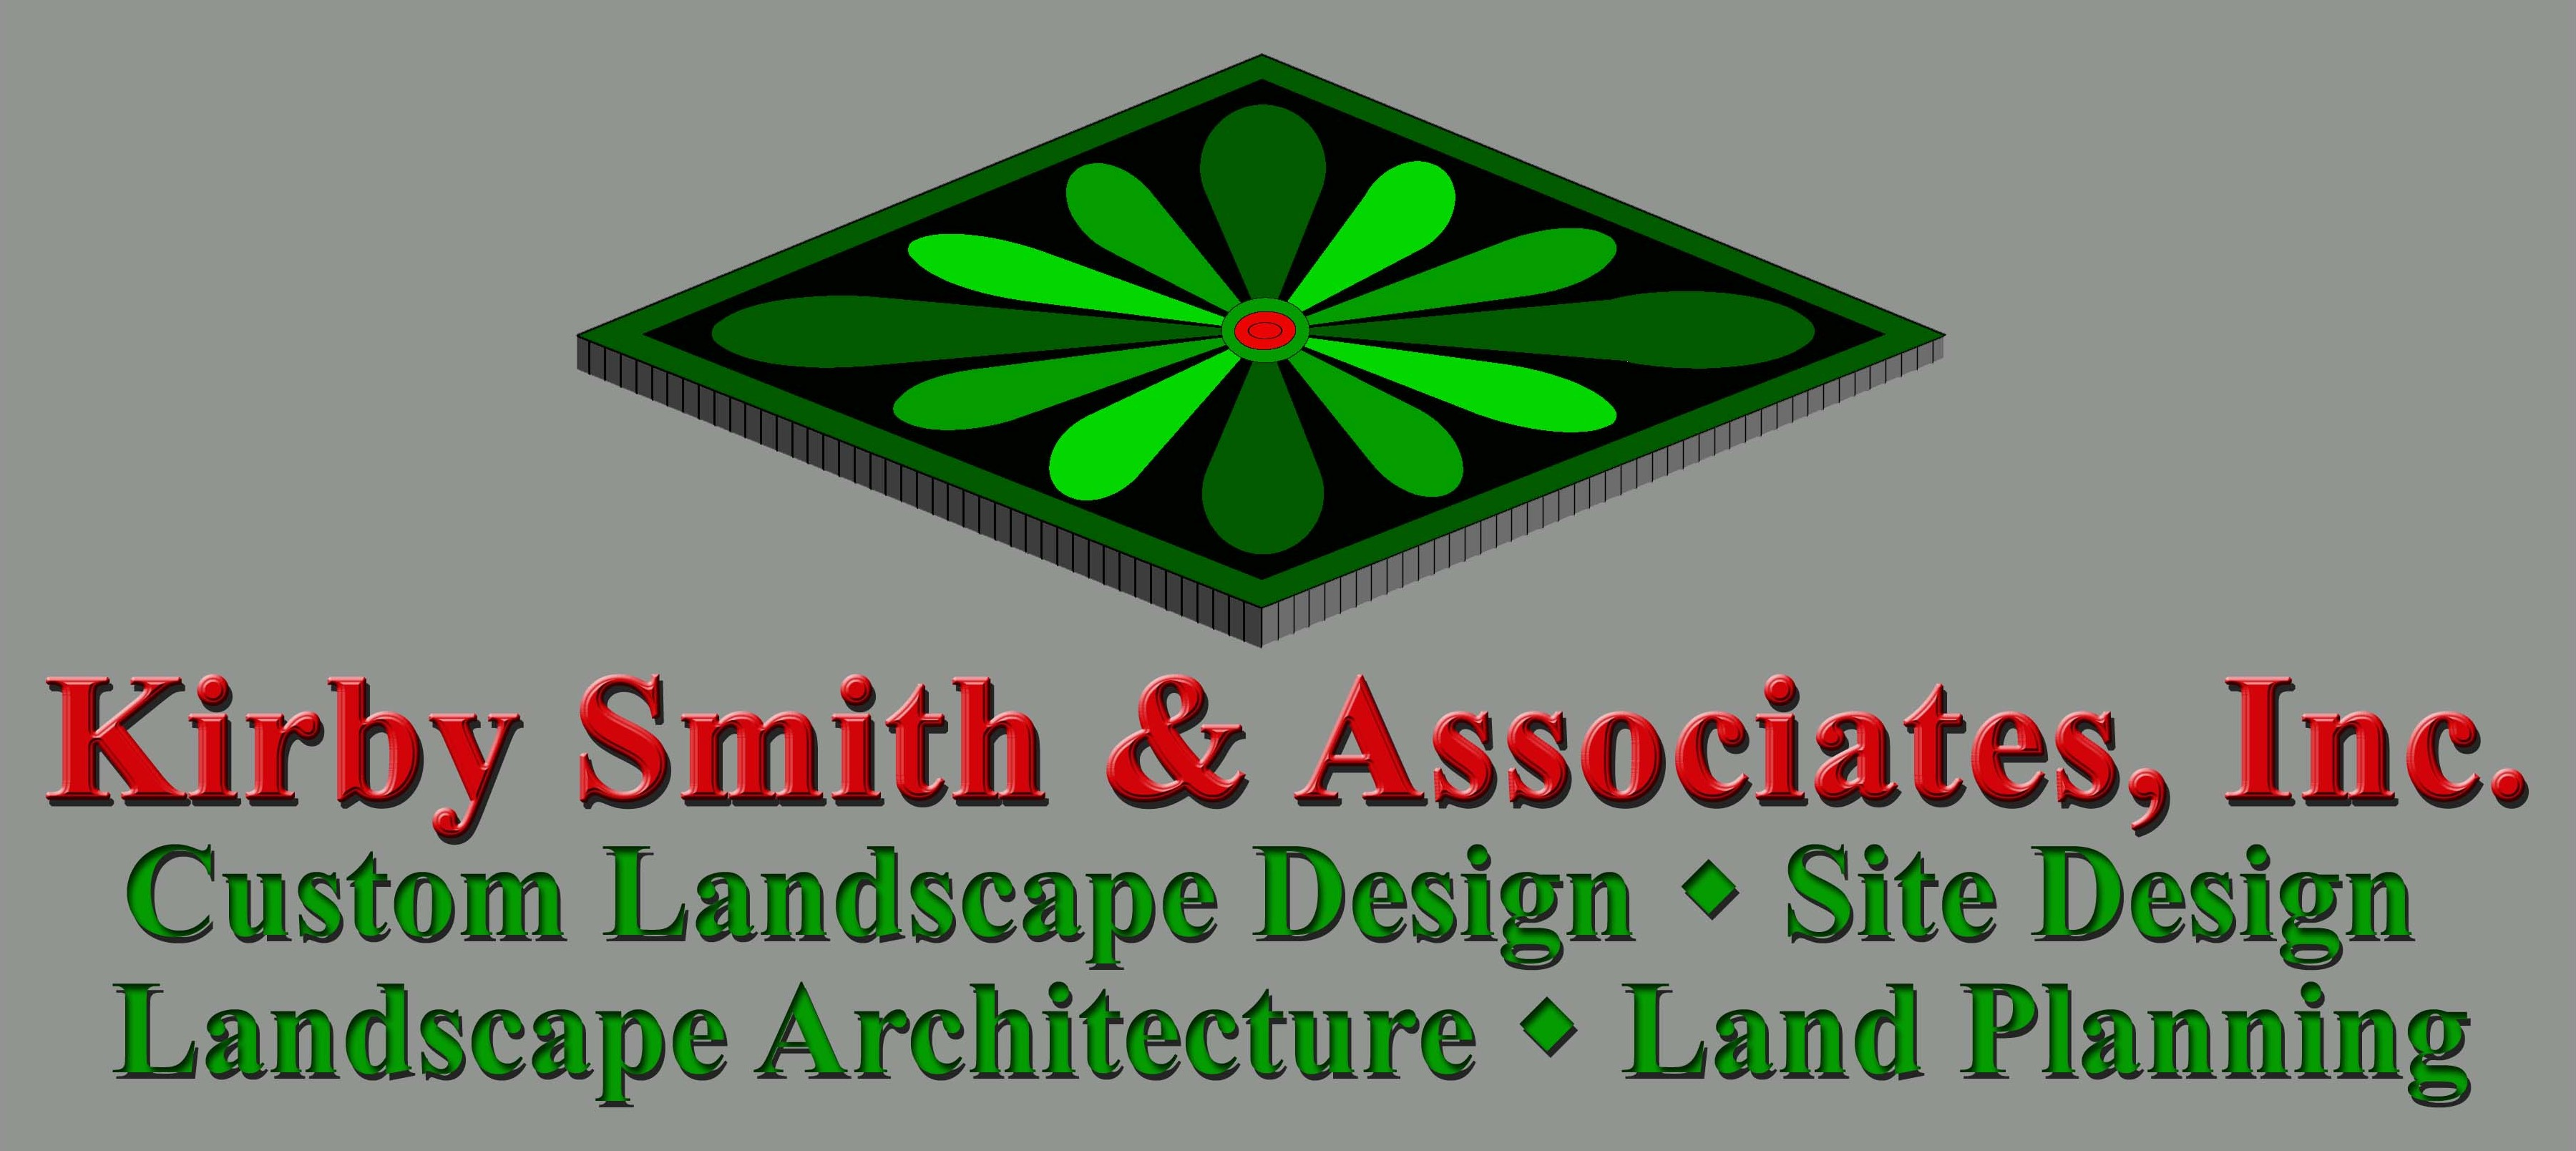 Commercial Mixed Use Site Planning Kirby Smith